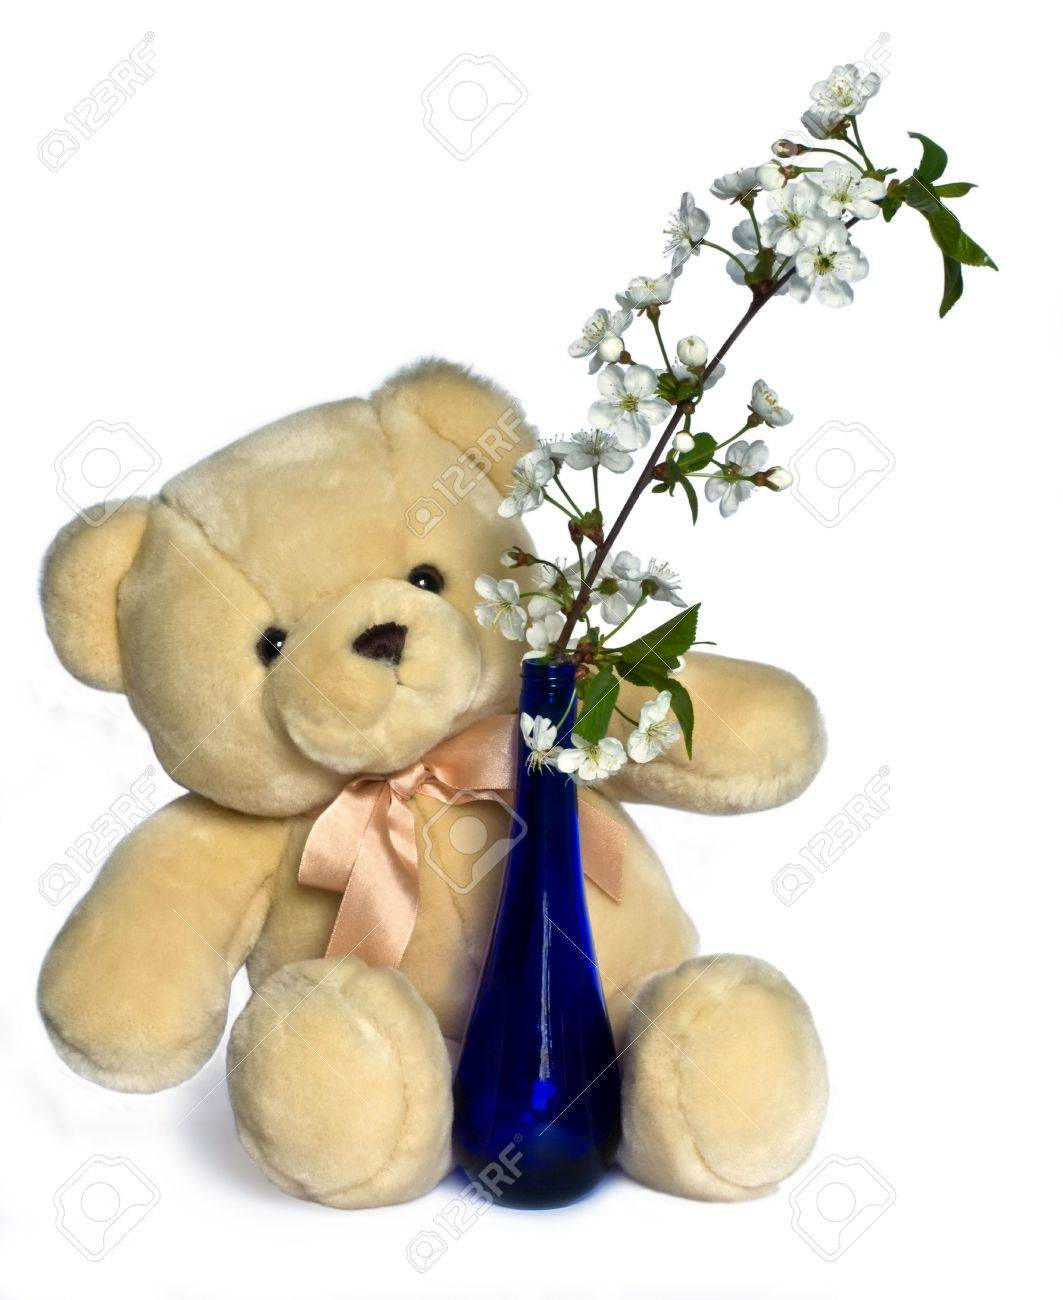 teddy bear and calyx flowers